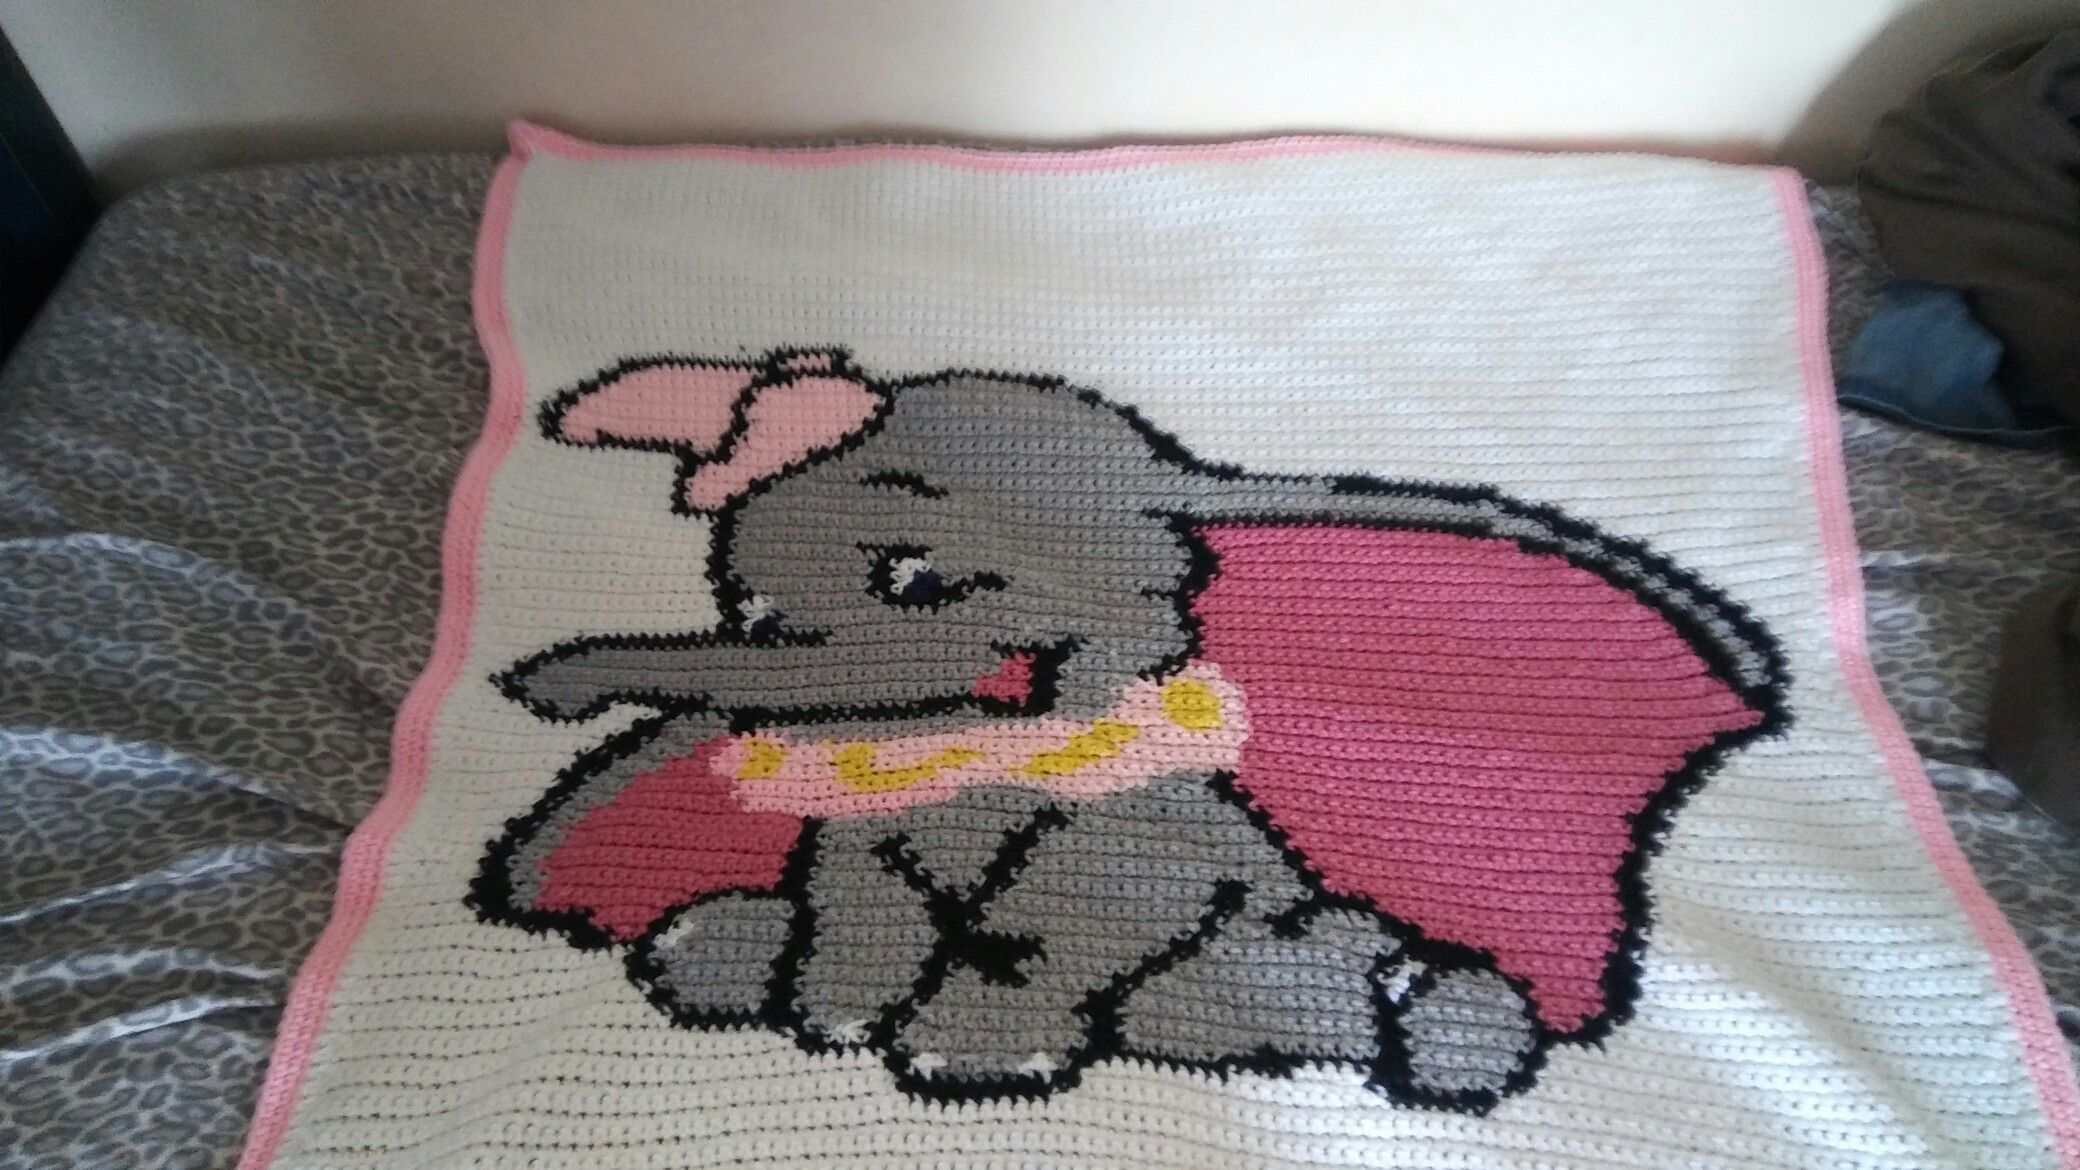 Baby Shower Gifts Crafts ~ Dumbo blanket i crocheted for a baby shower gift crafted by kikyo